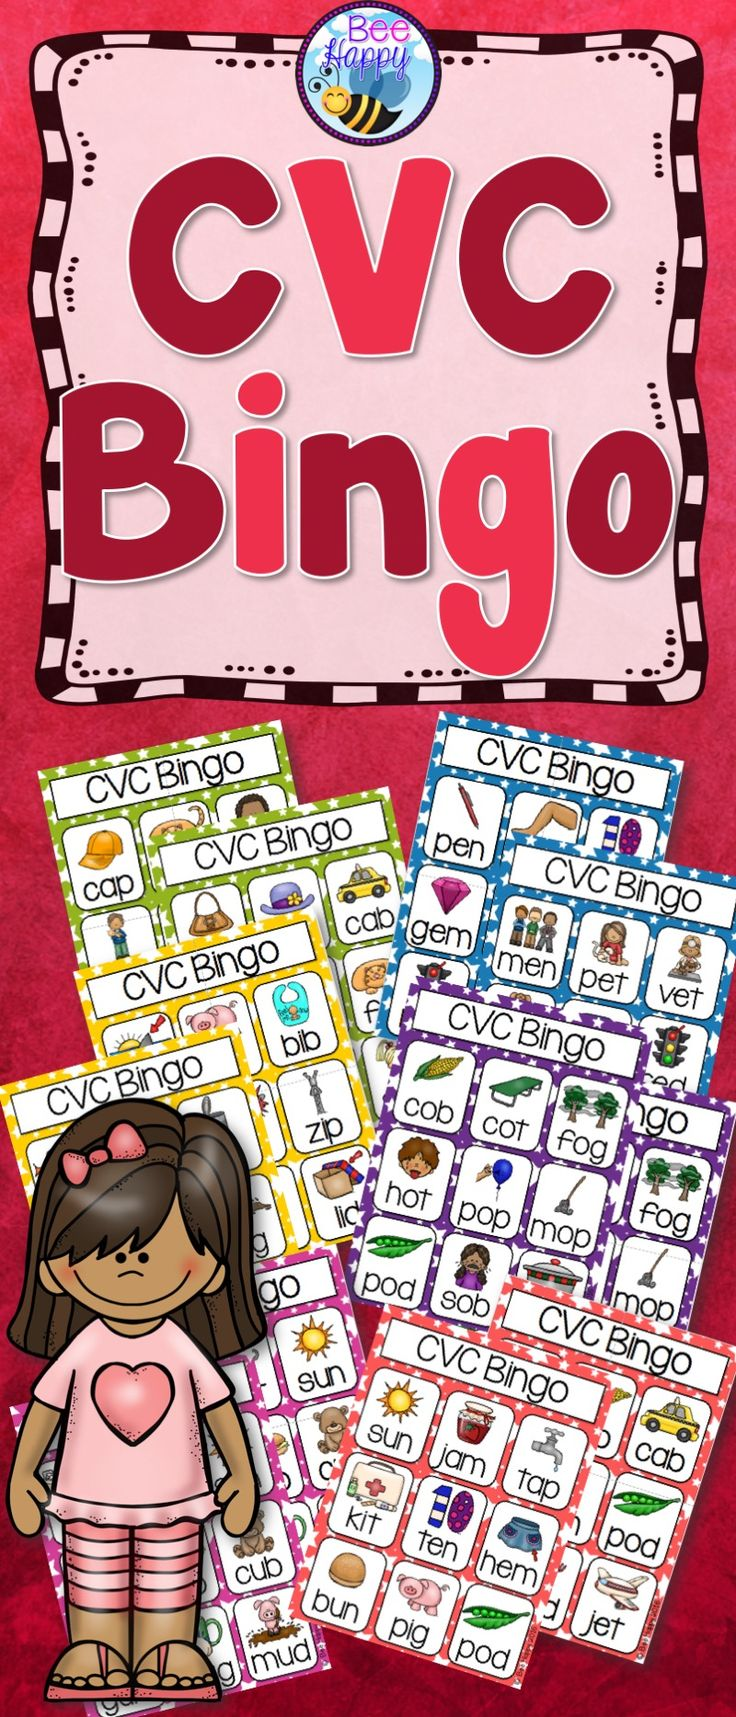 CVC Bingo  This resource has six Bingo games to practice and consolidate the five short vowel sounds.  Each game has eight Bingo boards, making it perfect to play in small groups, in literacy centers or they could even be made up and sent home for homework!